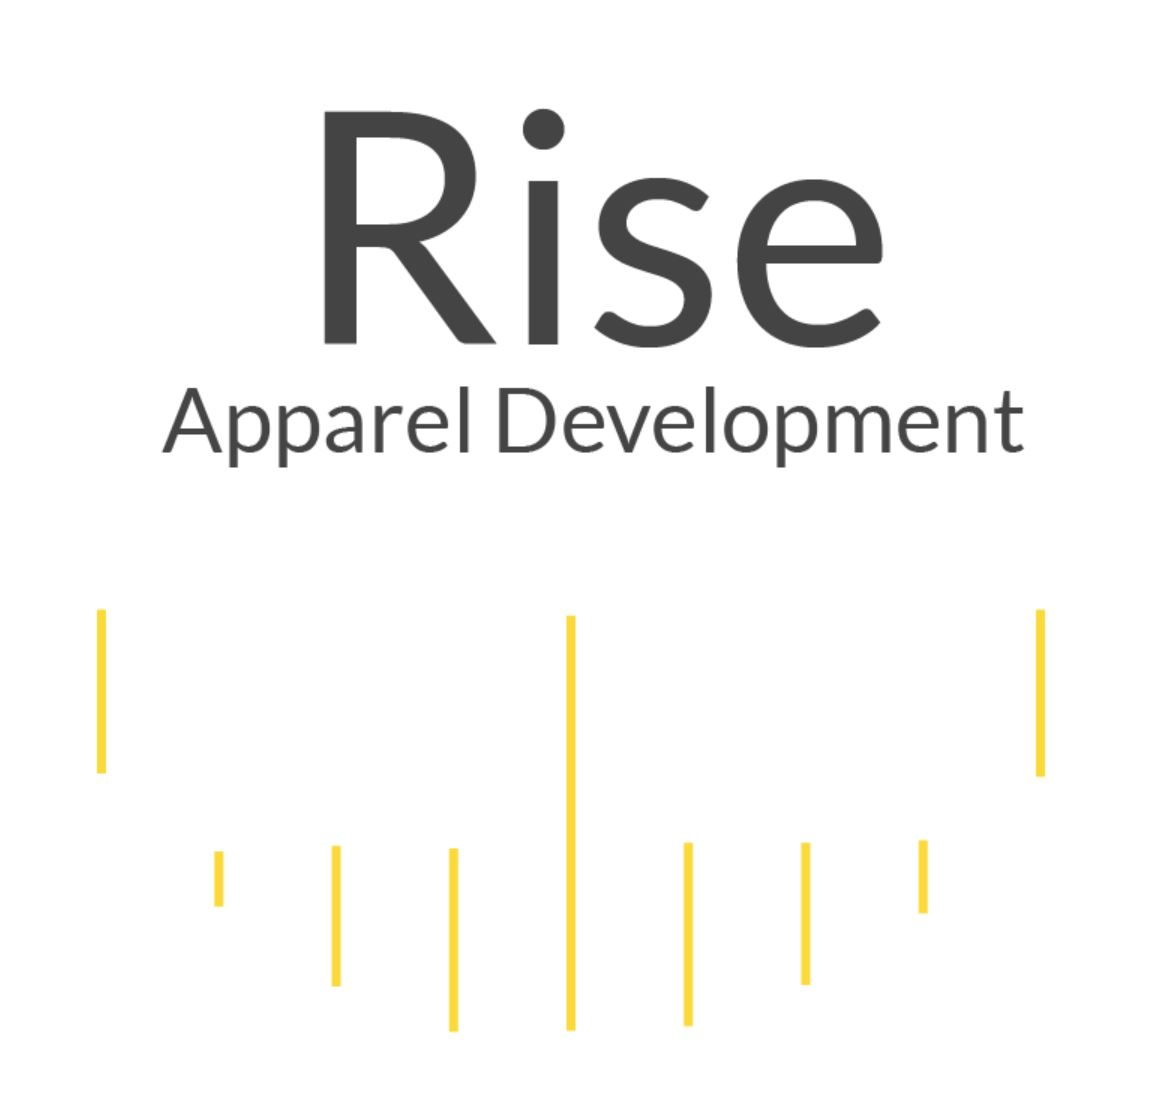 Rise Apparel Development